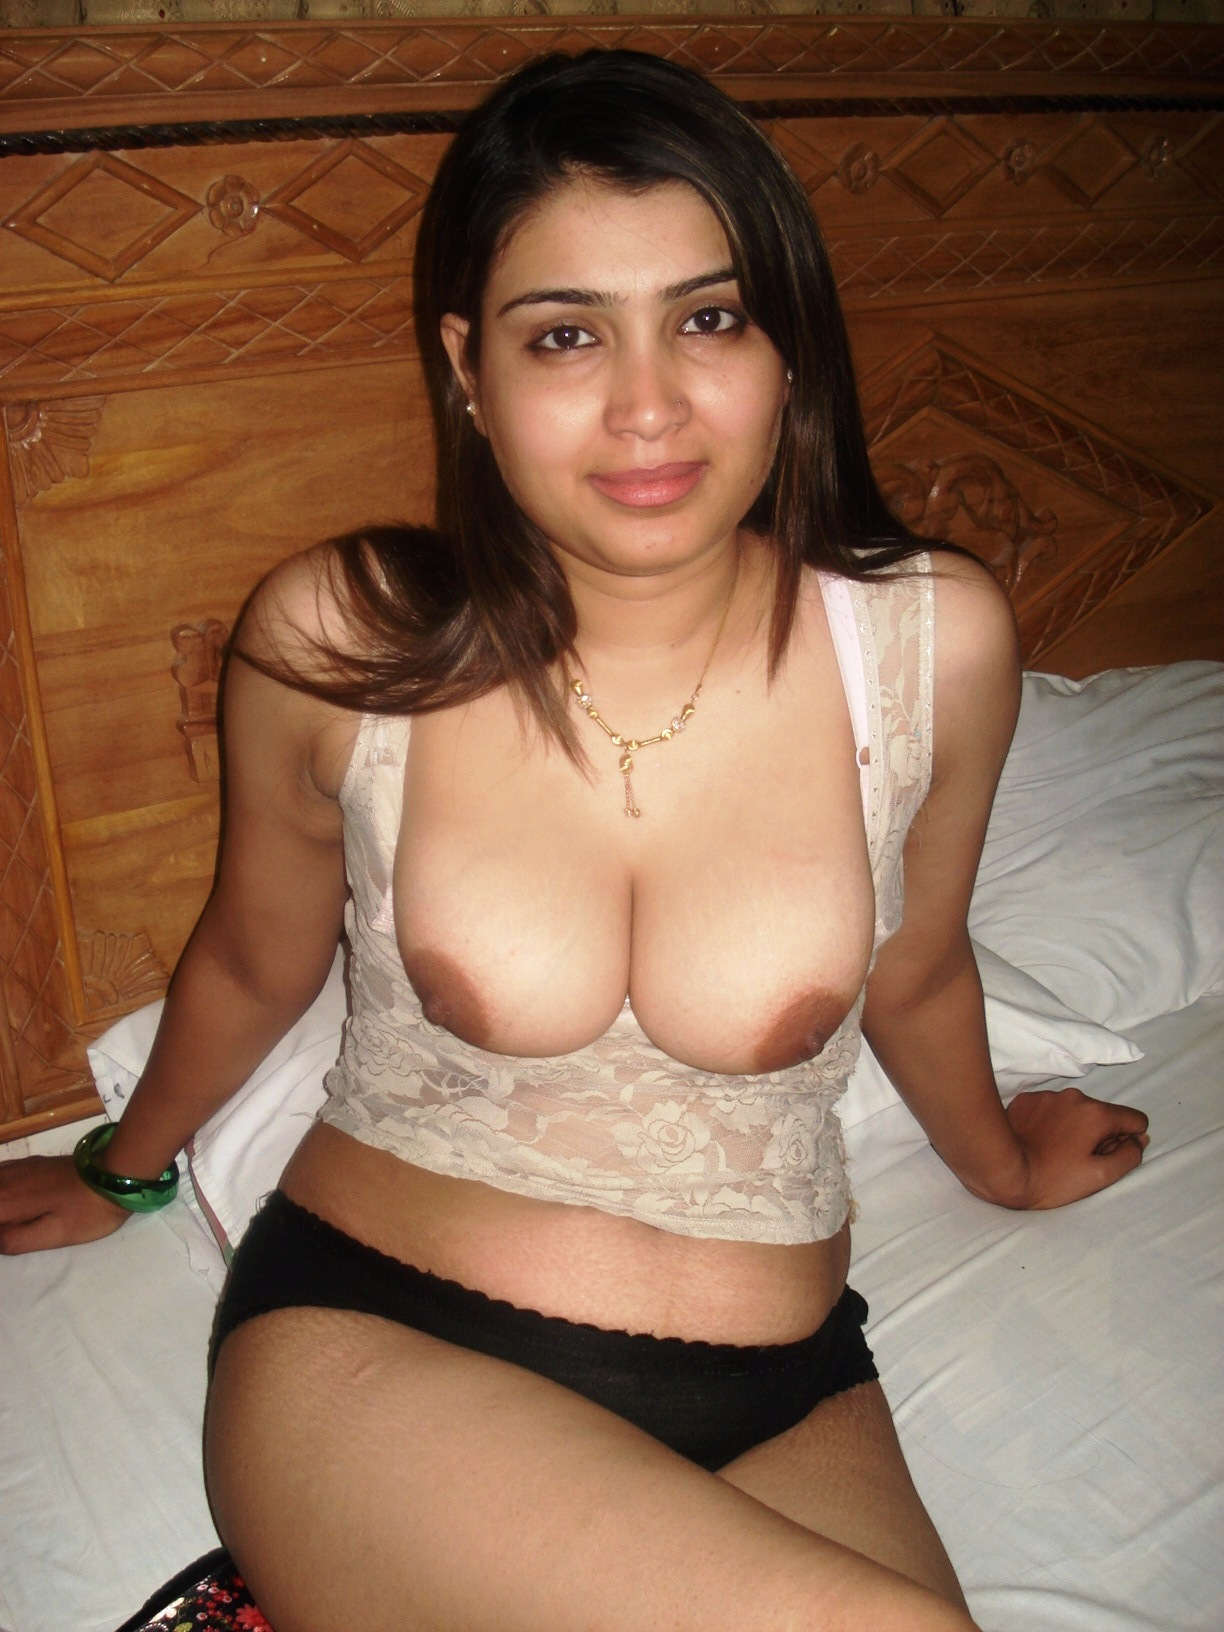 Matchless Malayalam couples without bra and panty images were visited